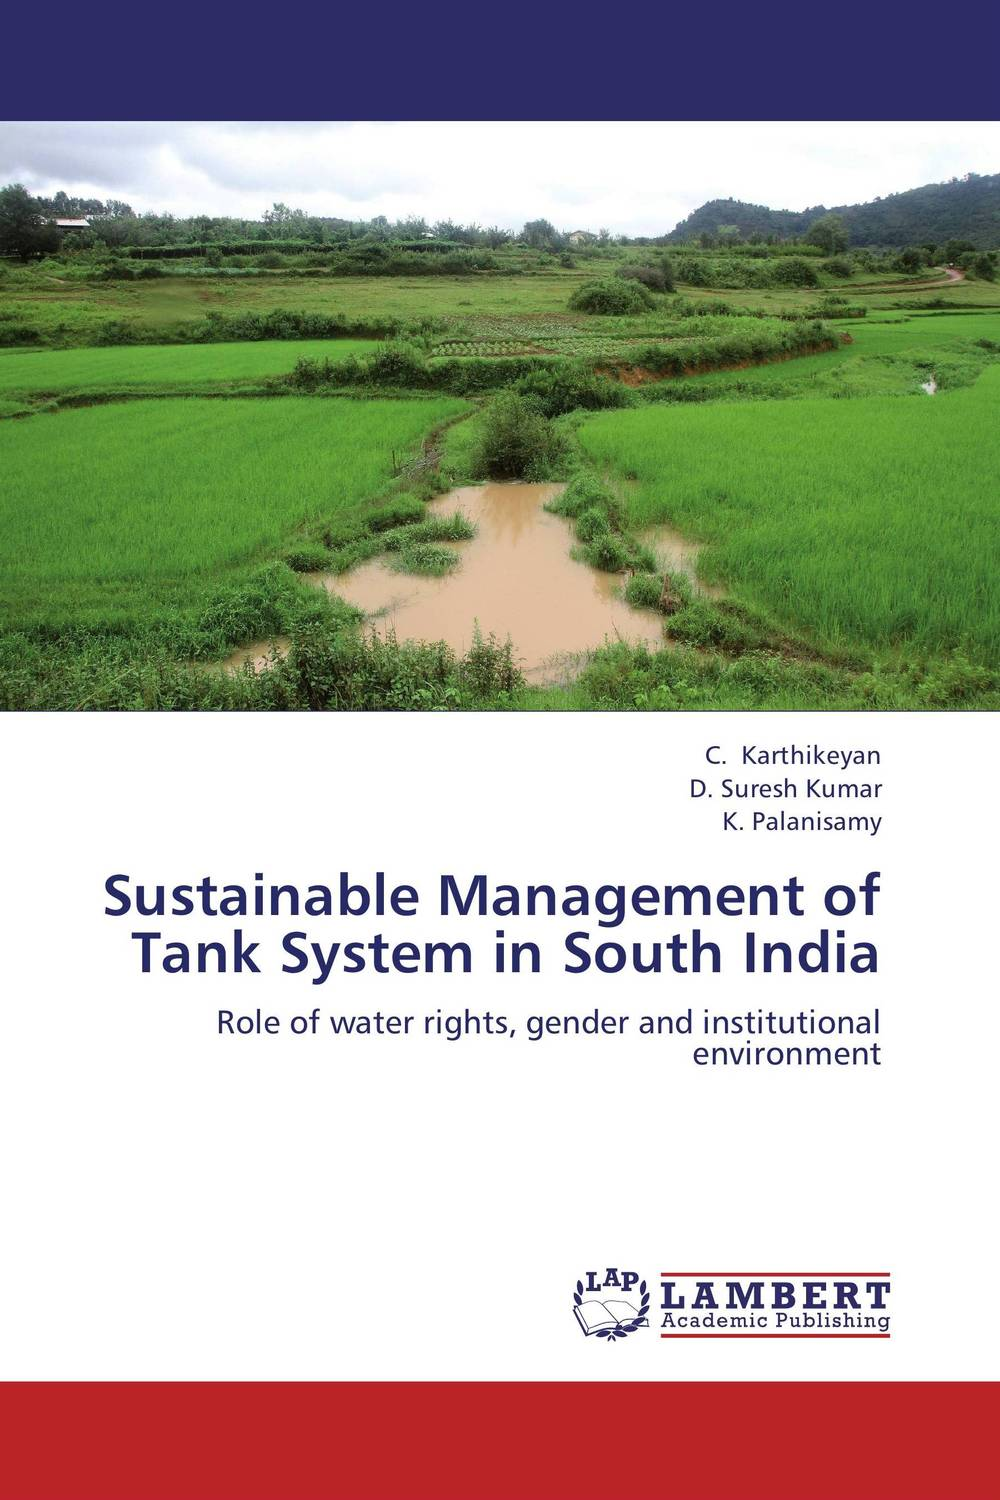 купить Sustainable Management of Tank System in South India недорого